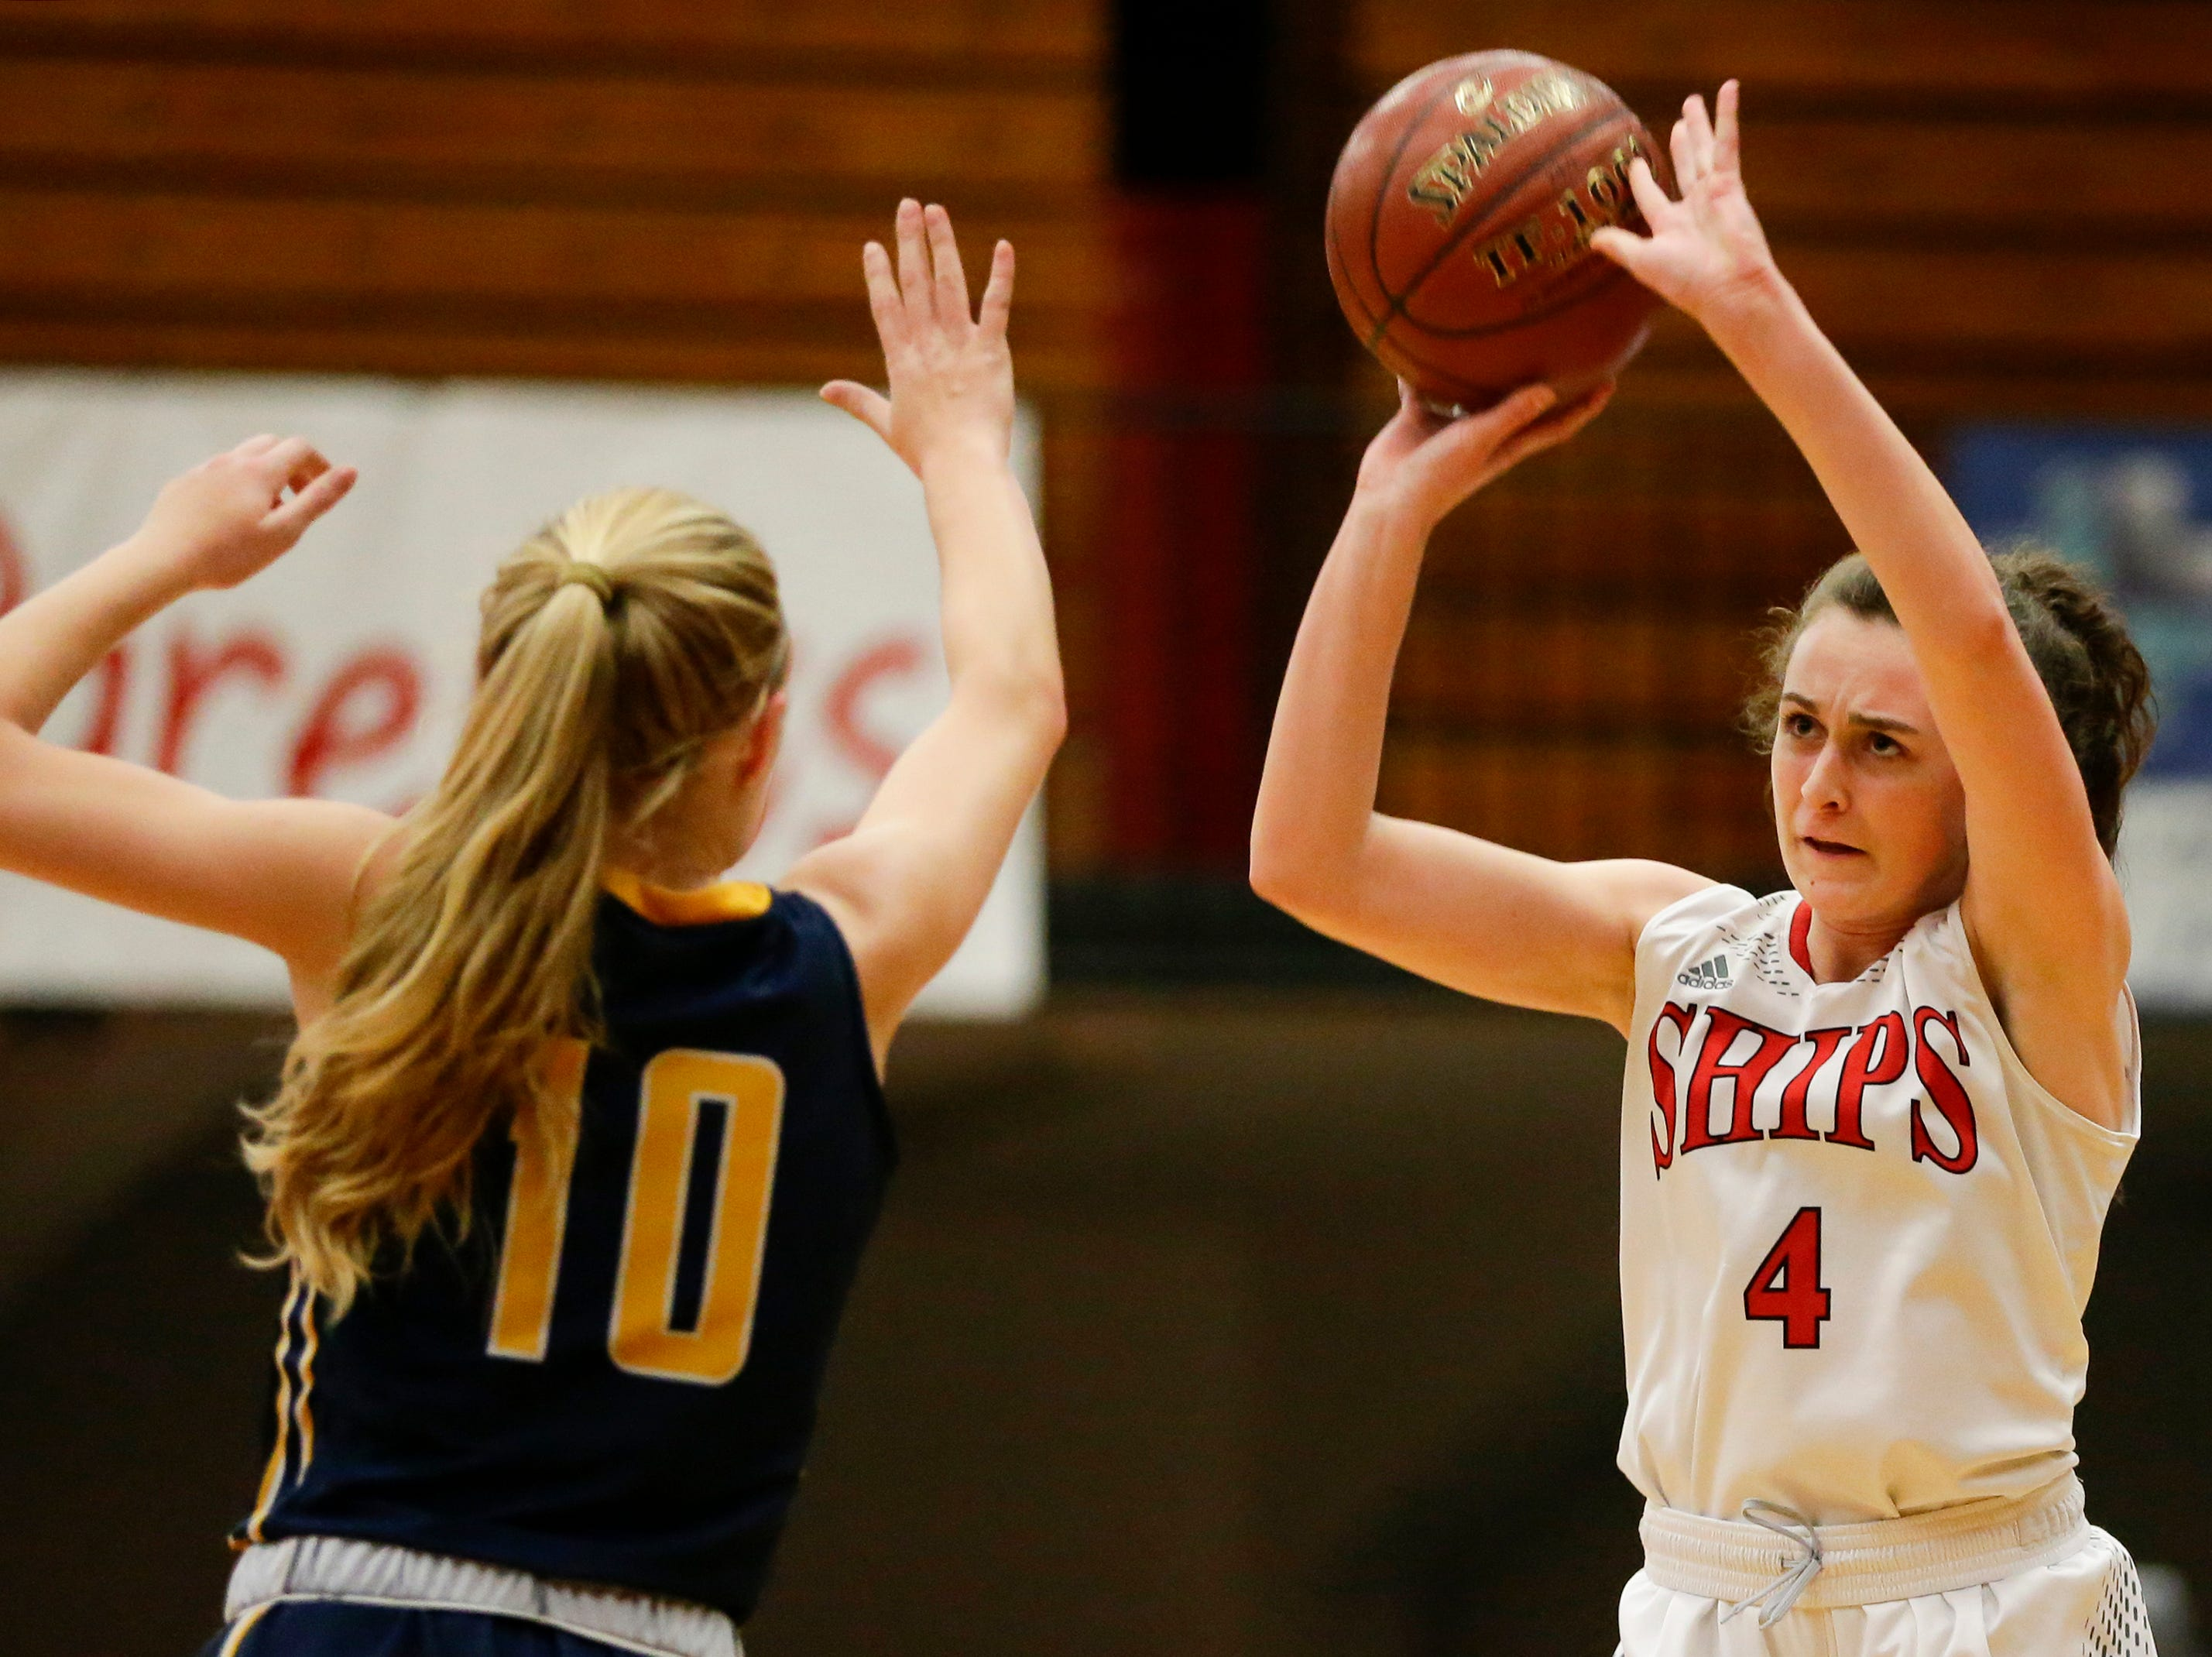 Manitowoc Lincoln's Ava Swoboda shoots against Sheboygan North during a Fox River Classic Conference game at Manitowoc Lincoln High School Friday, December 14, 2018, in Manitowoc, Wis. Joshua Clark/USA TODAY NETWORK-Wisconsin